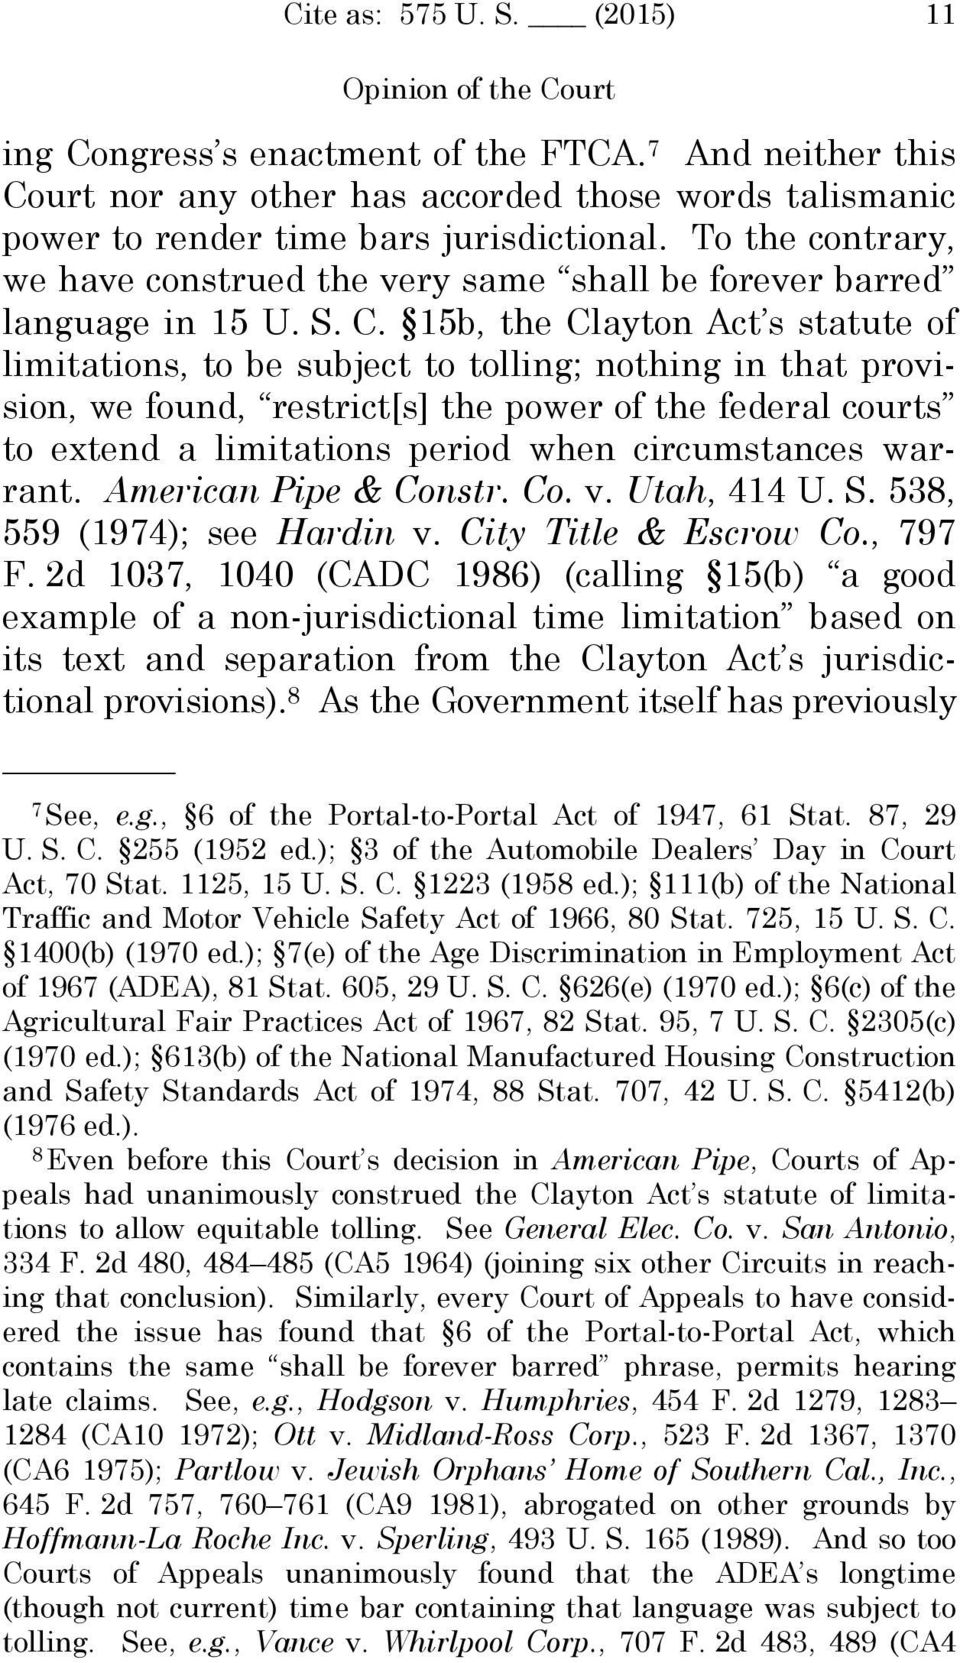 15b, the Clayton Act s statute of limitations, to be subject to tolling; nothing in that provision, we found, restrict[s] the power of the federal courts to extend a limitations period when